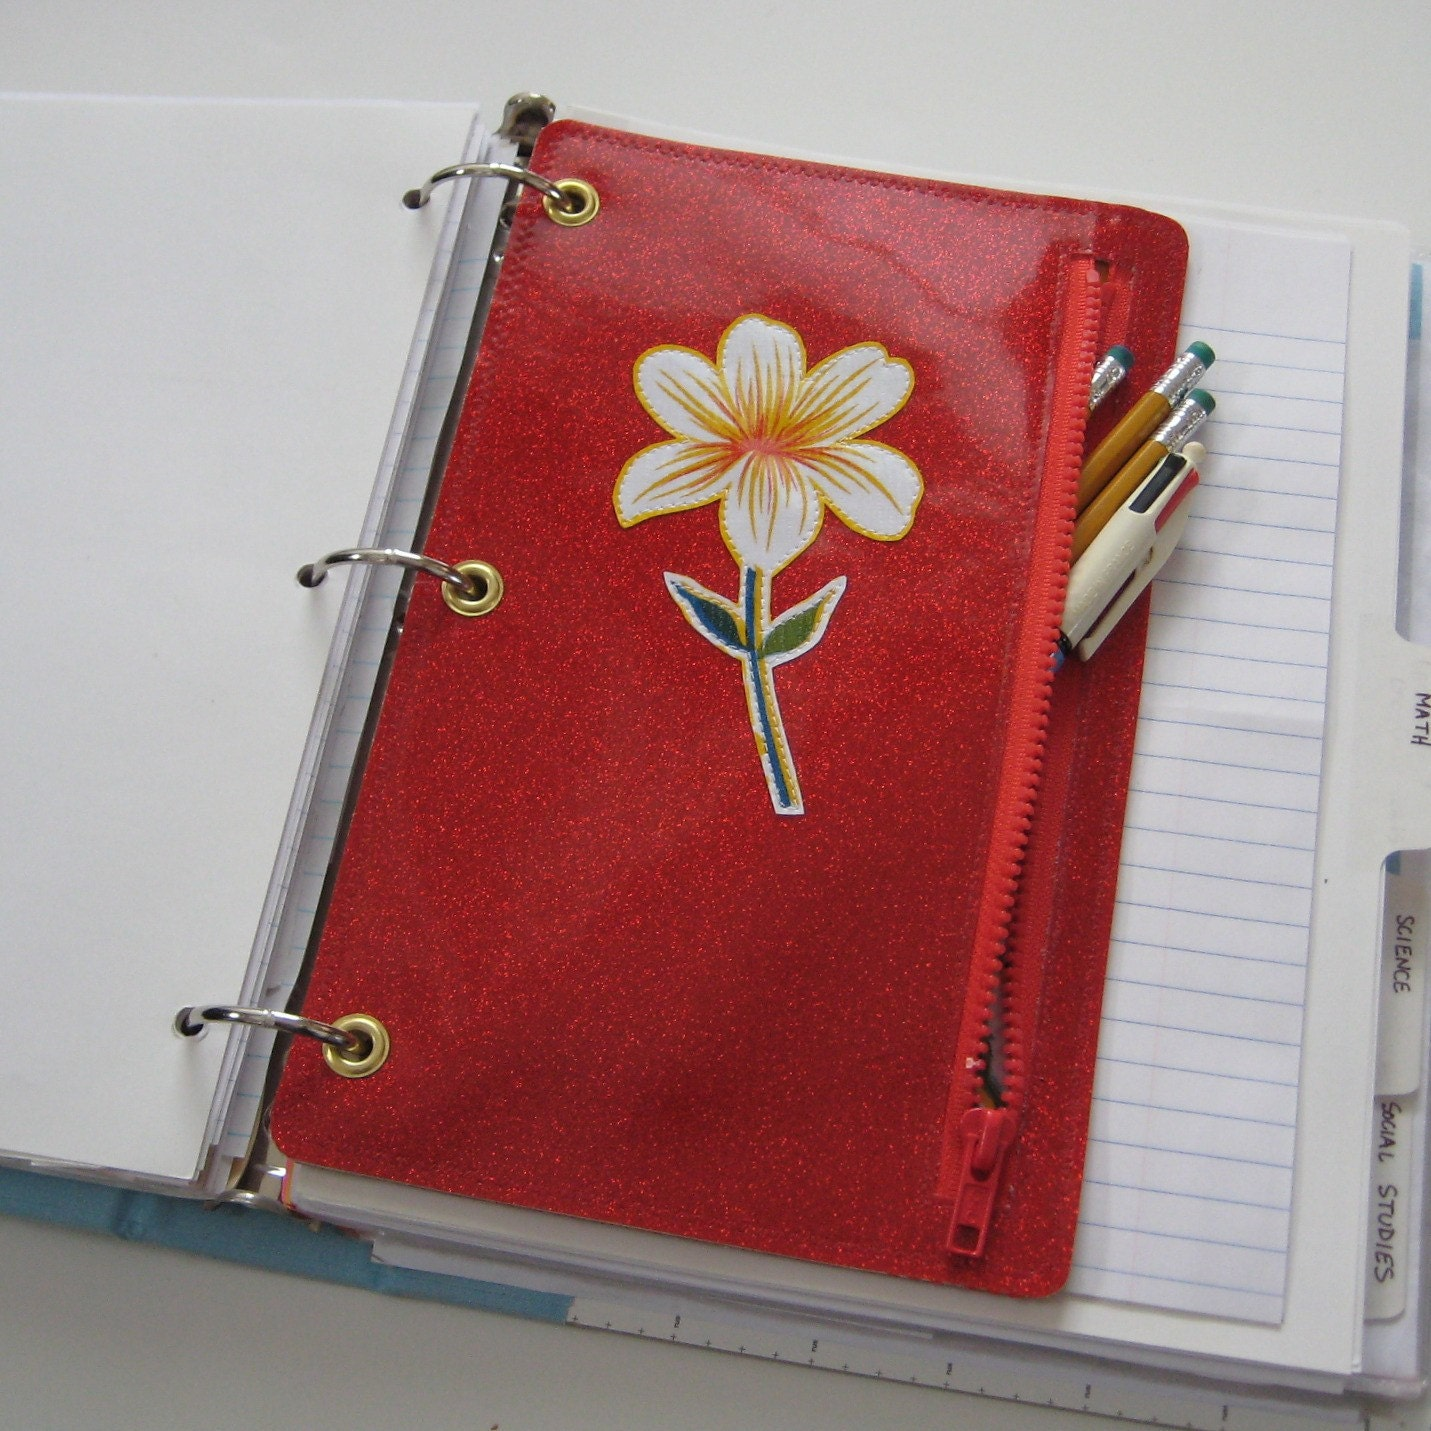 Vinyl Pencil Pouch For Three Ring Binder With Appliqued Flower